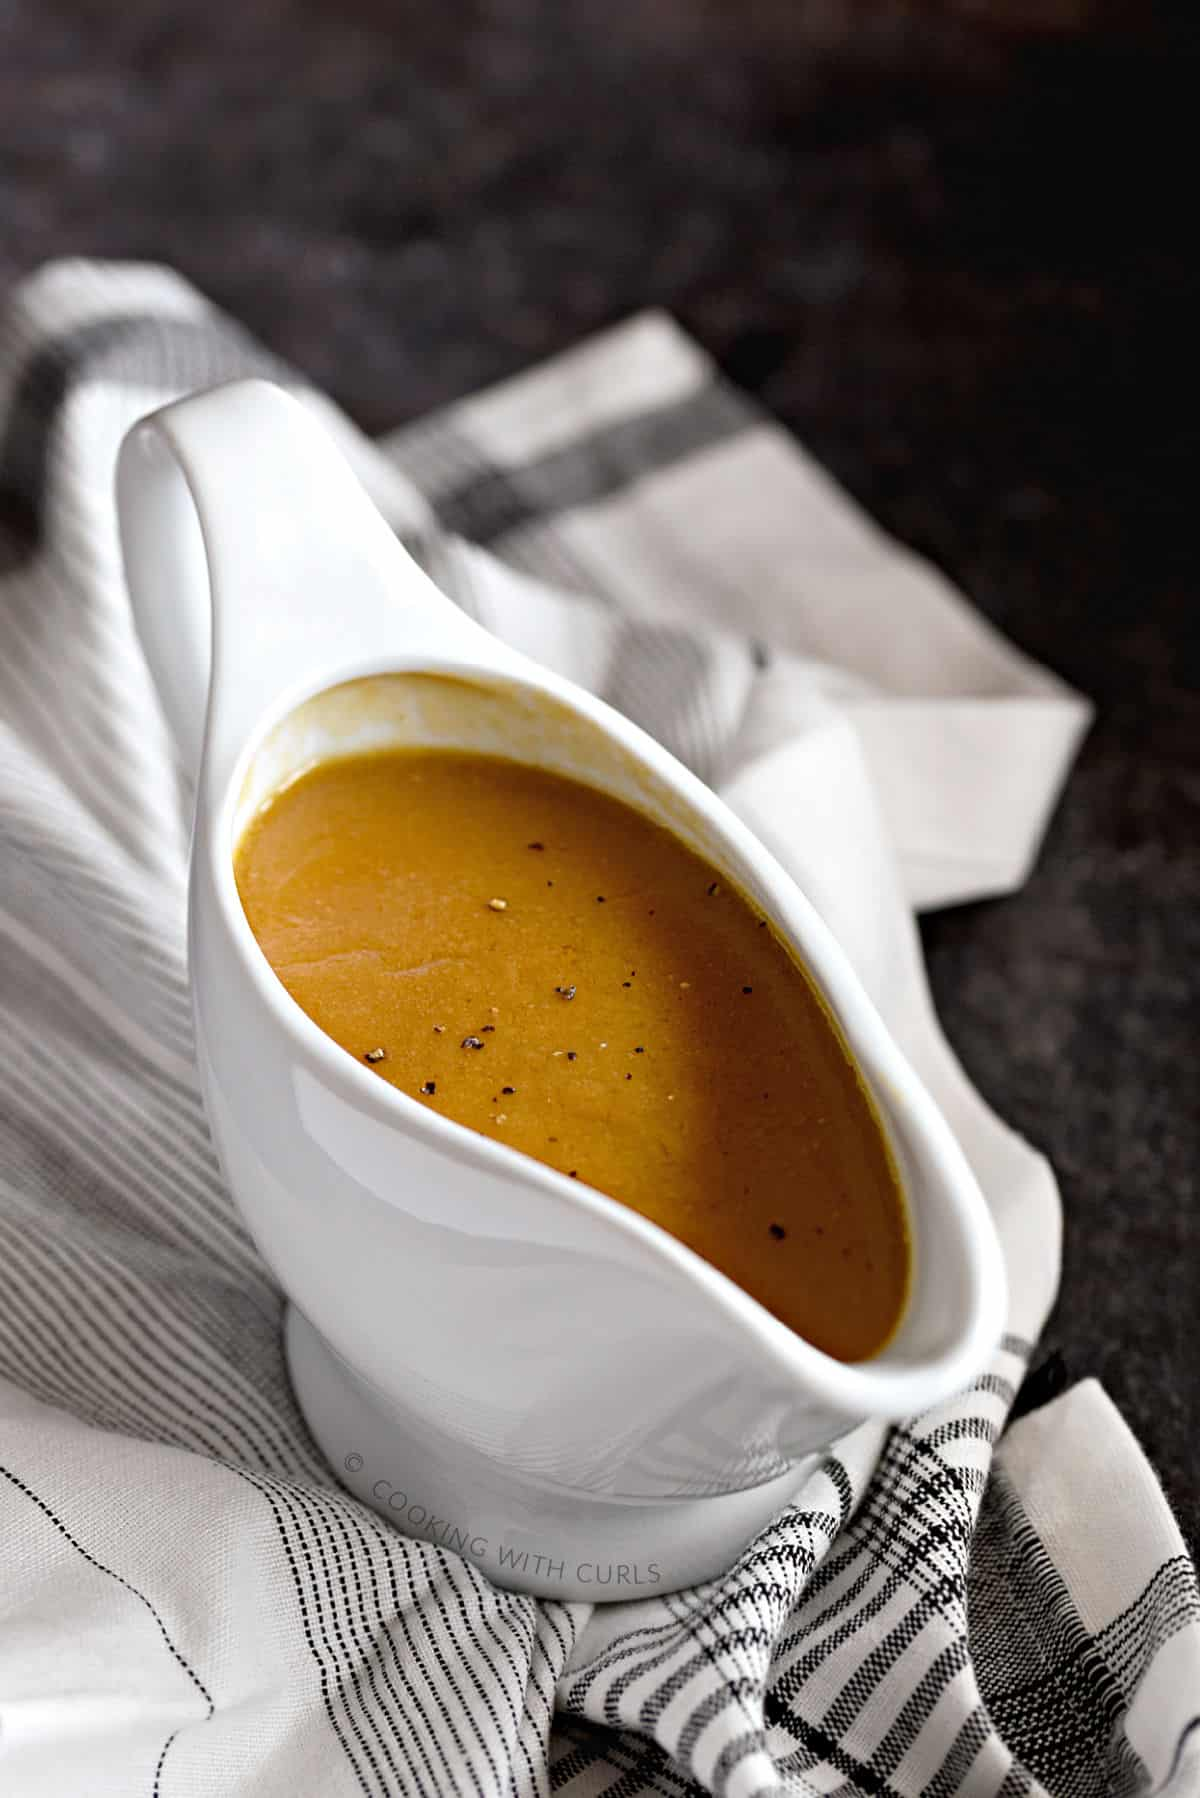 Rich, brown turkey gravy sprinkled with black pepper in a white gravy boat sitting on a black and white striped napkin.